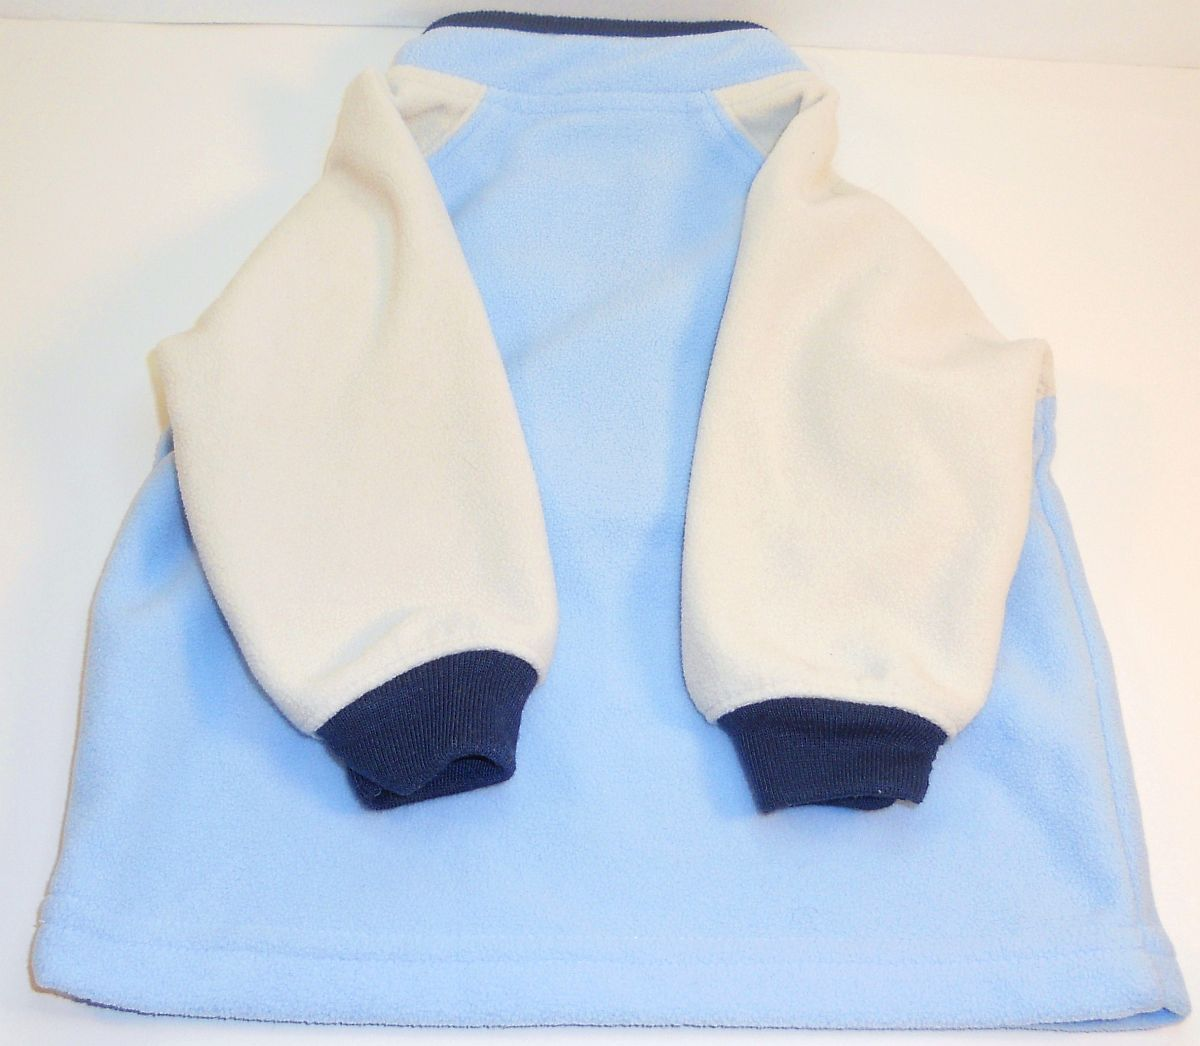 Image 1 of Carter's Fleece boys blue pullover sweater 0 to 3 months